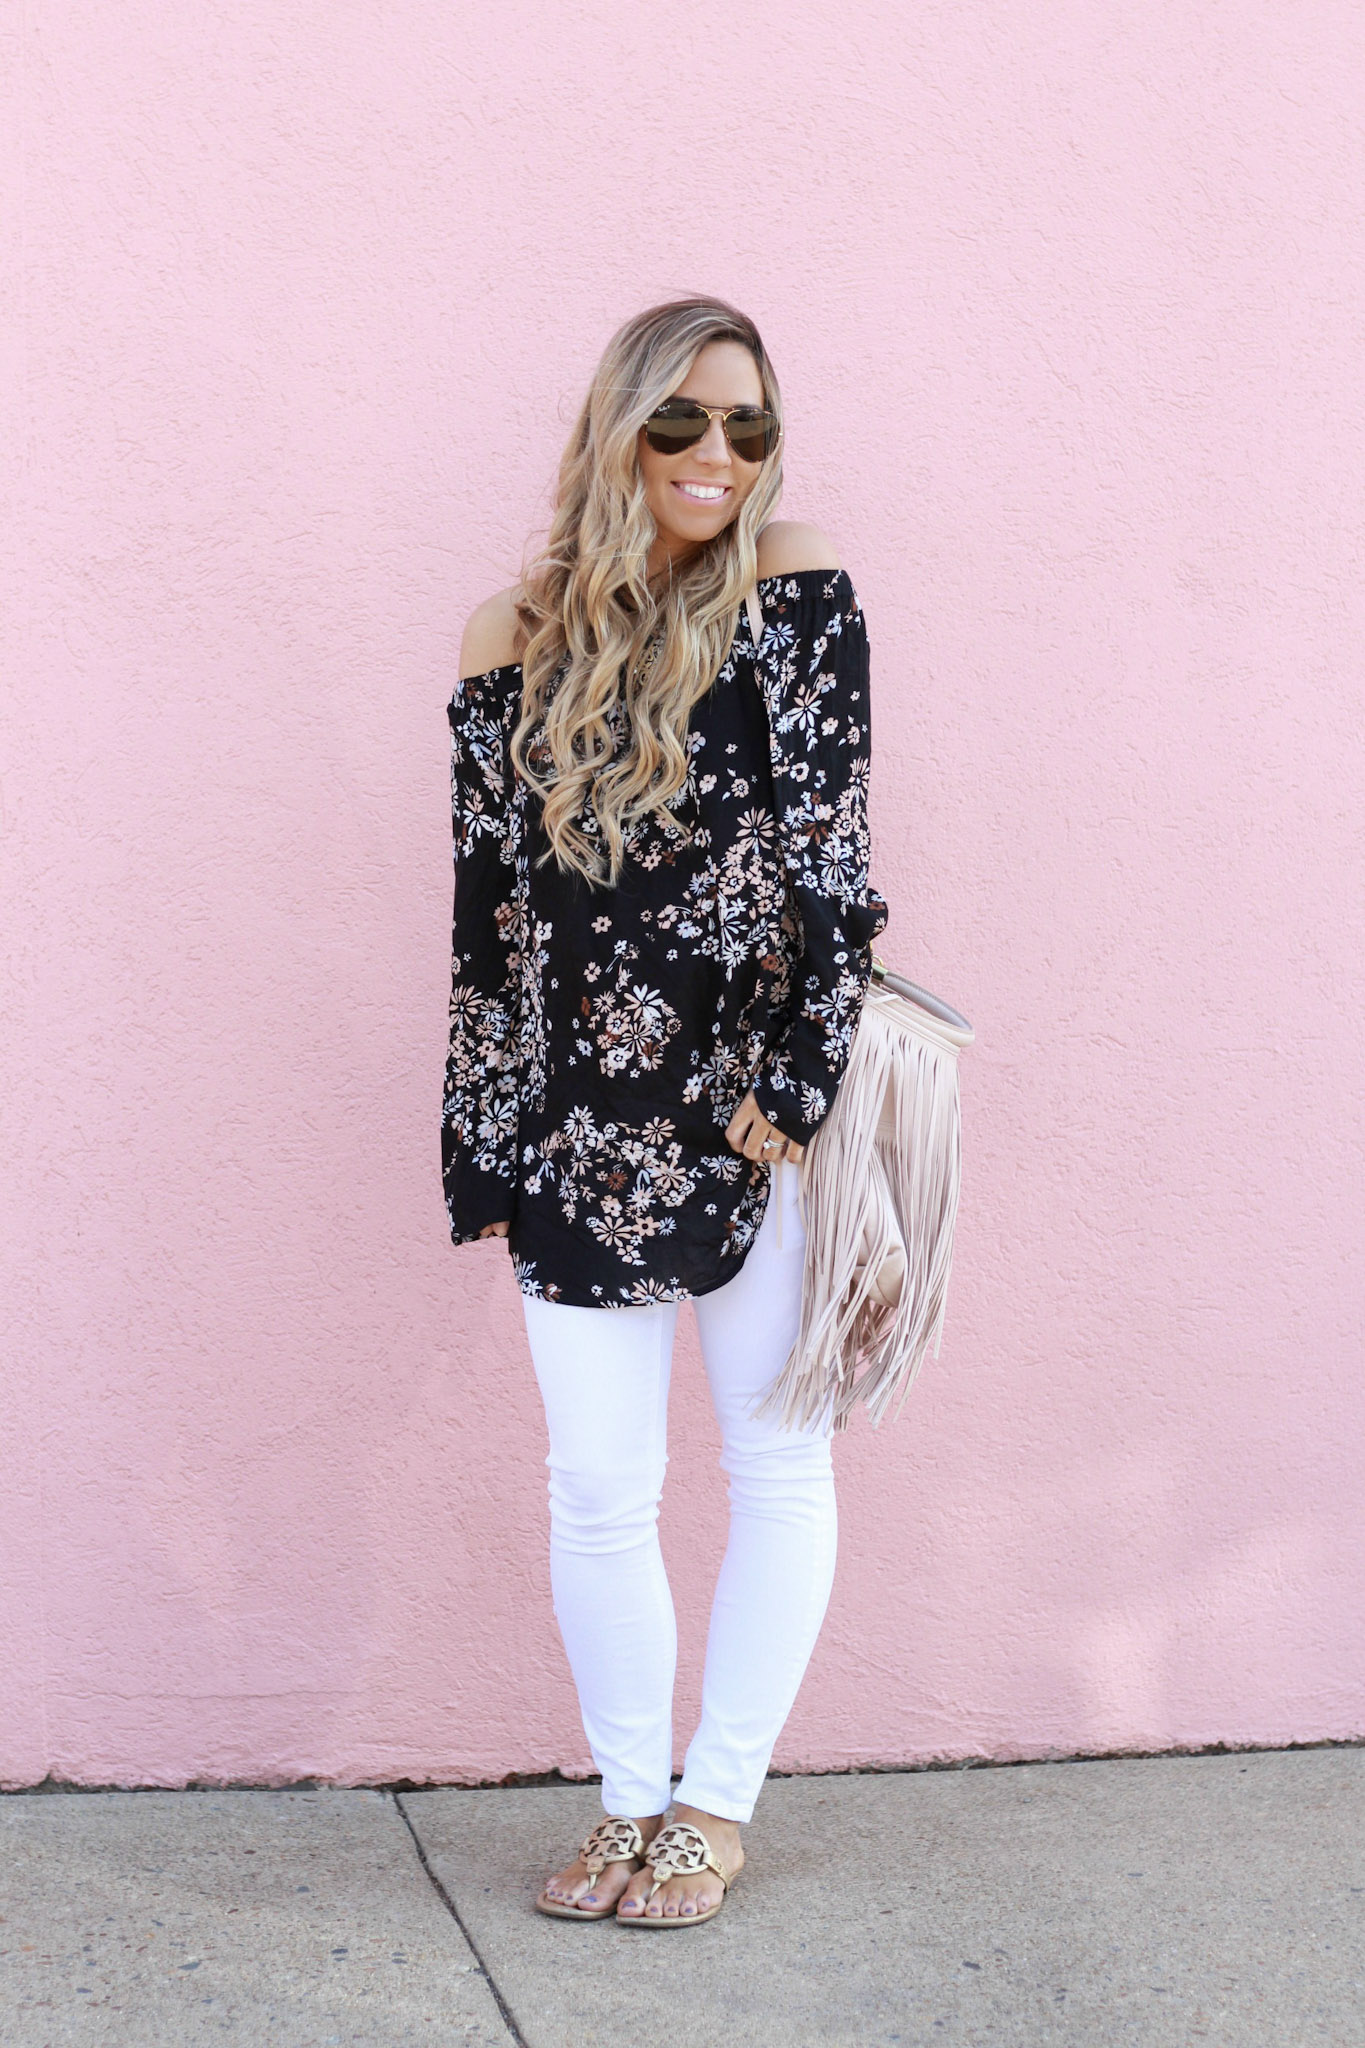 accordingtoblaire, according to blaire, floral ots top, nordstrom, fashion blogger, rva blogger, fringe bag, white skinny jeans, maternity jeans, tory burch miller sandals, best white jeans